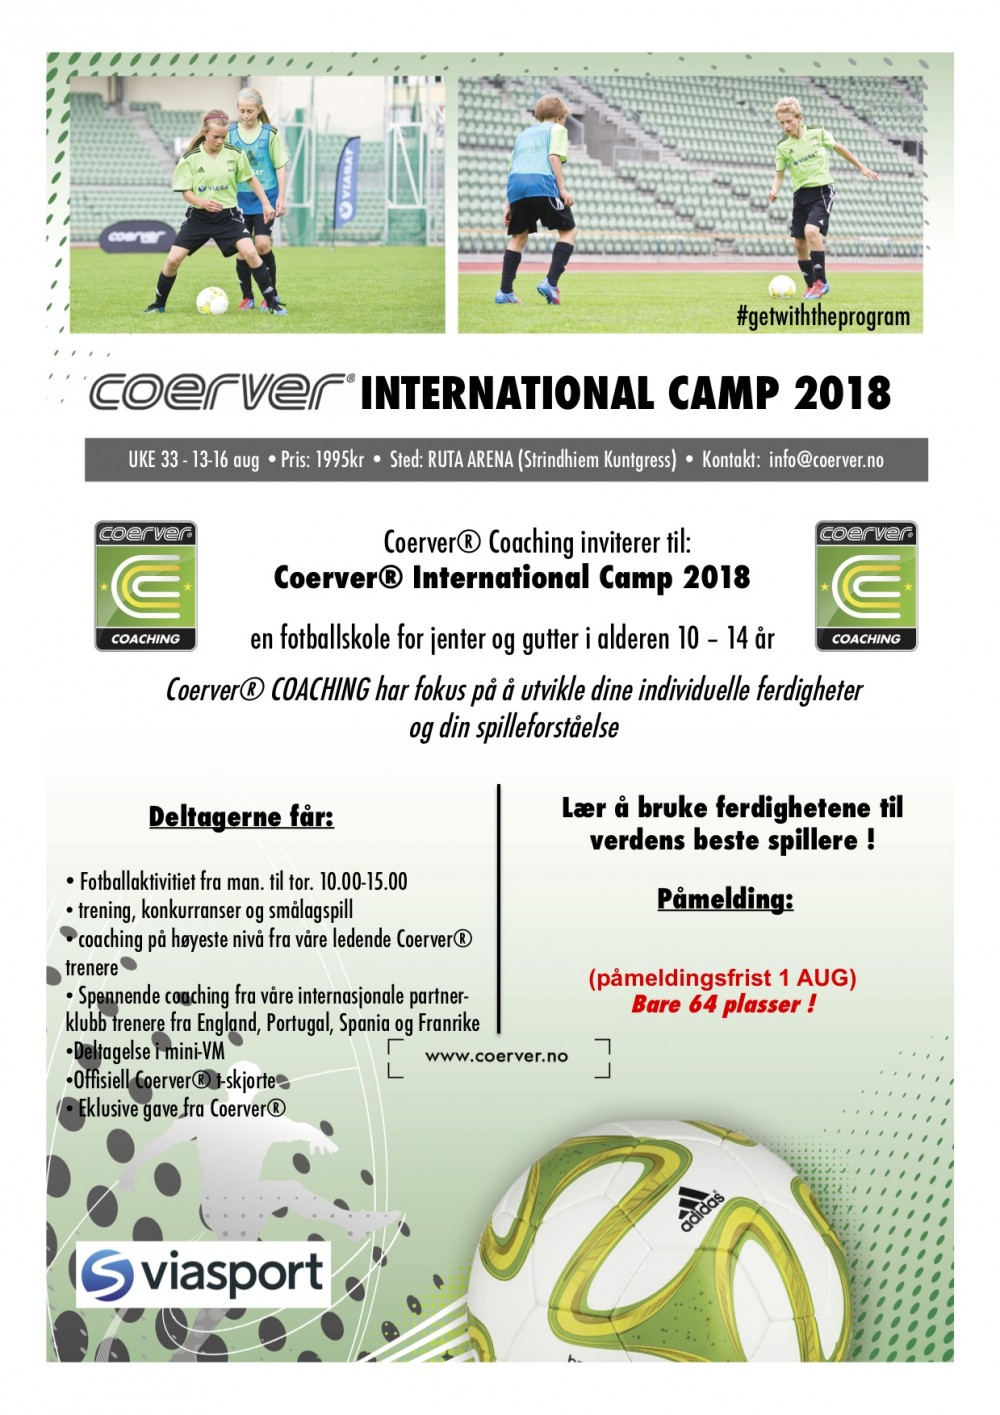 Coerver International Camp - Trondheim 2018